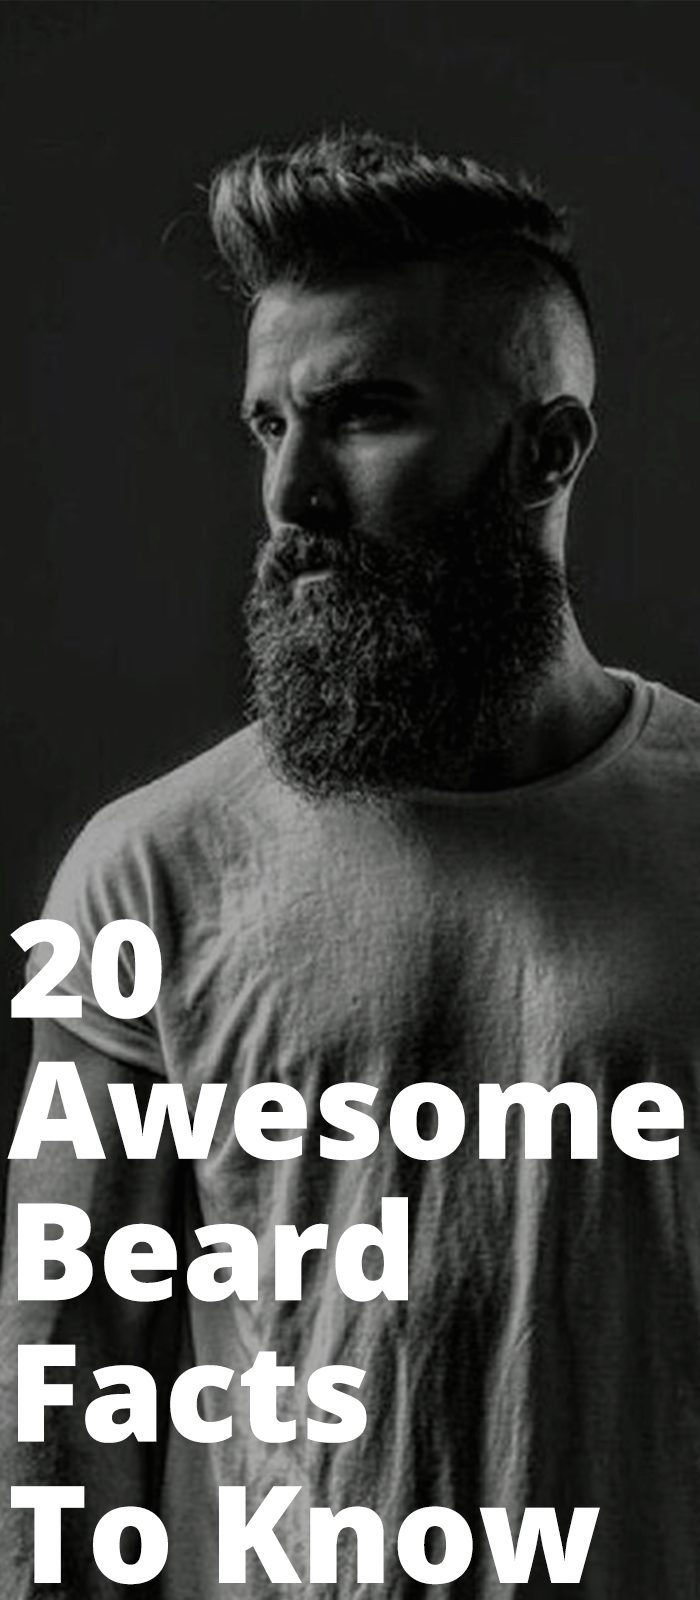 20 Awesome Beard Facts To Know